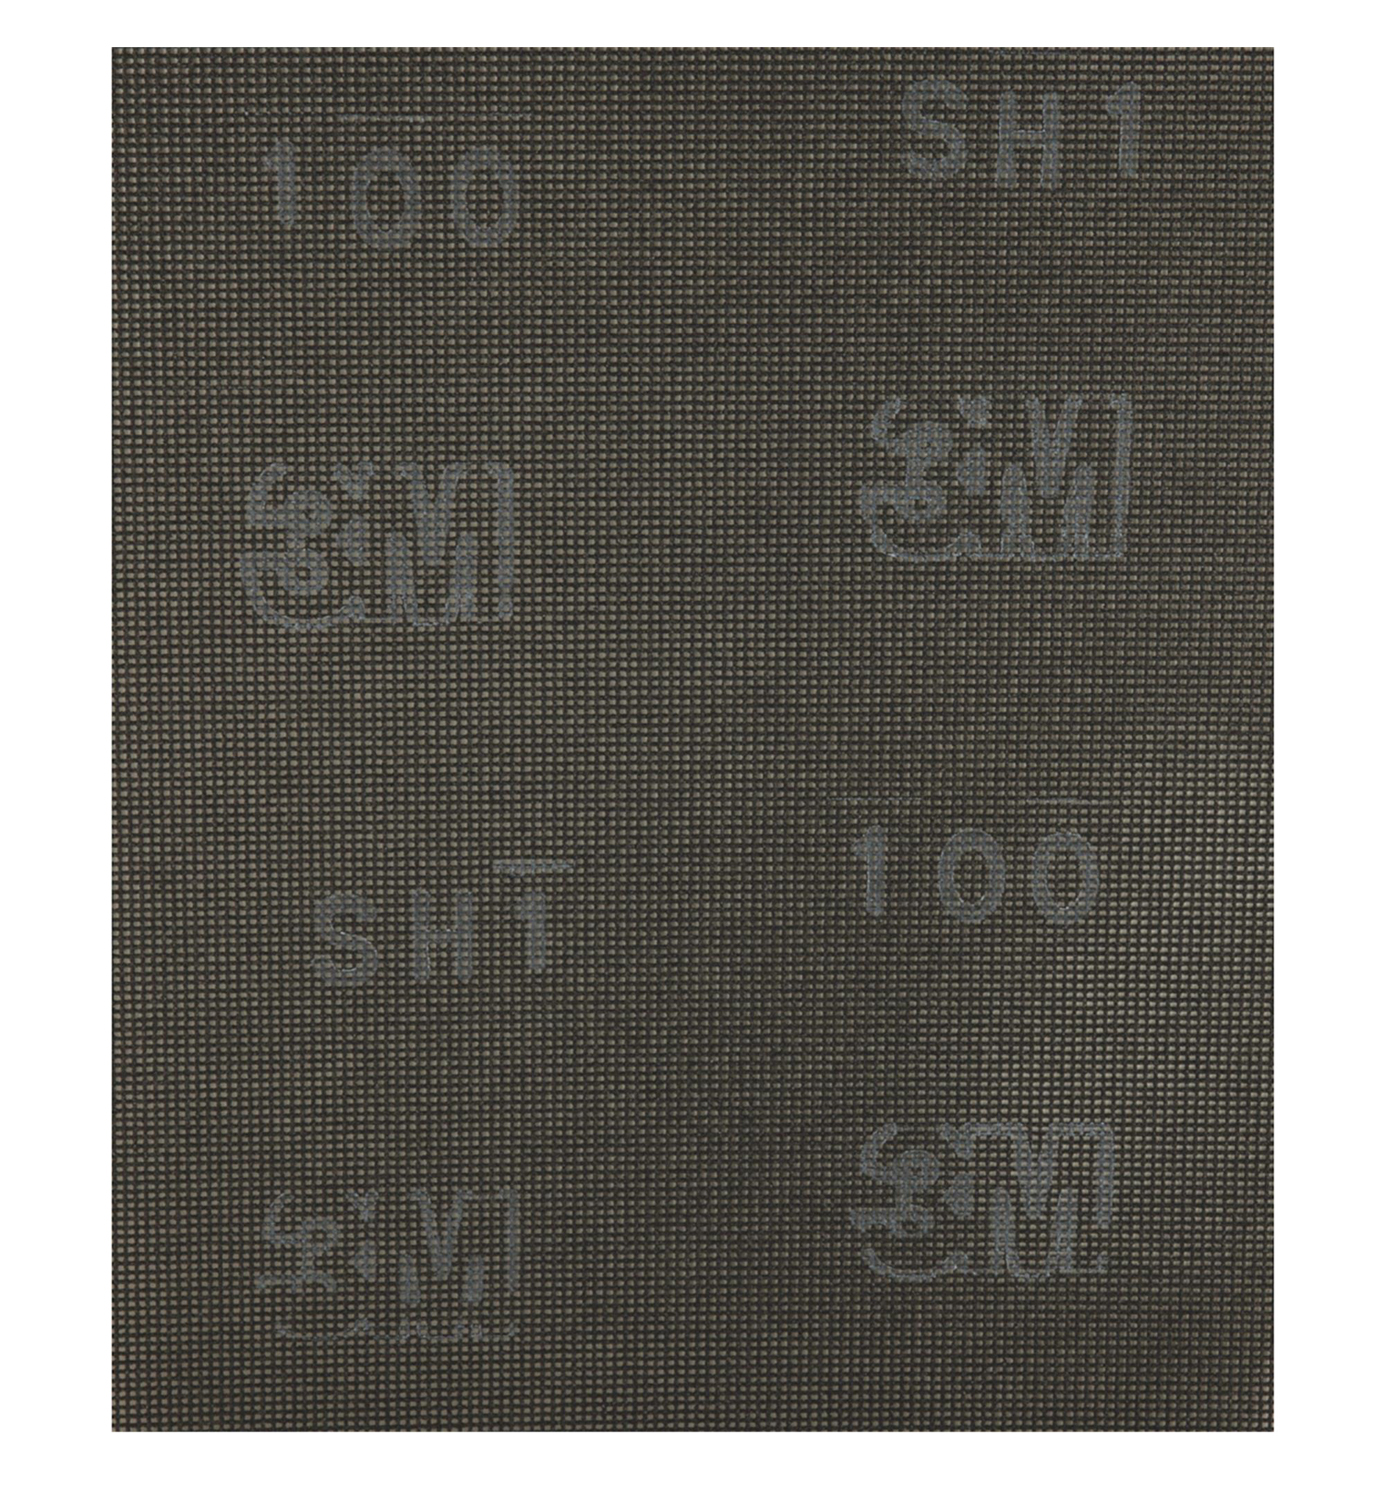 WET/DRY FABRIC SHEET 100